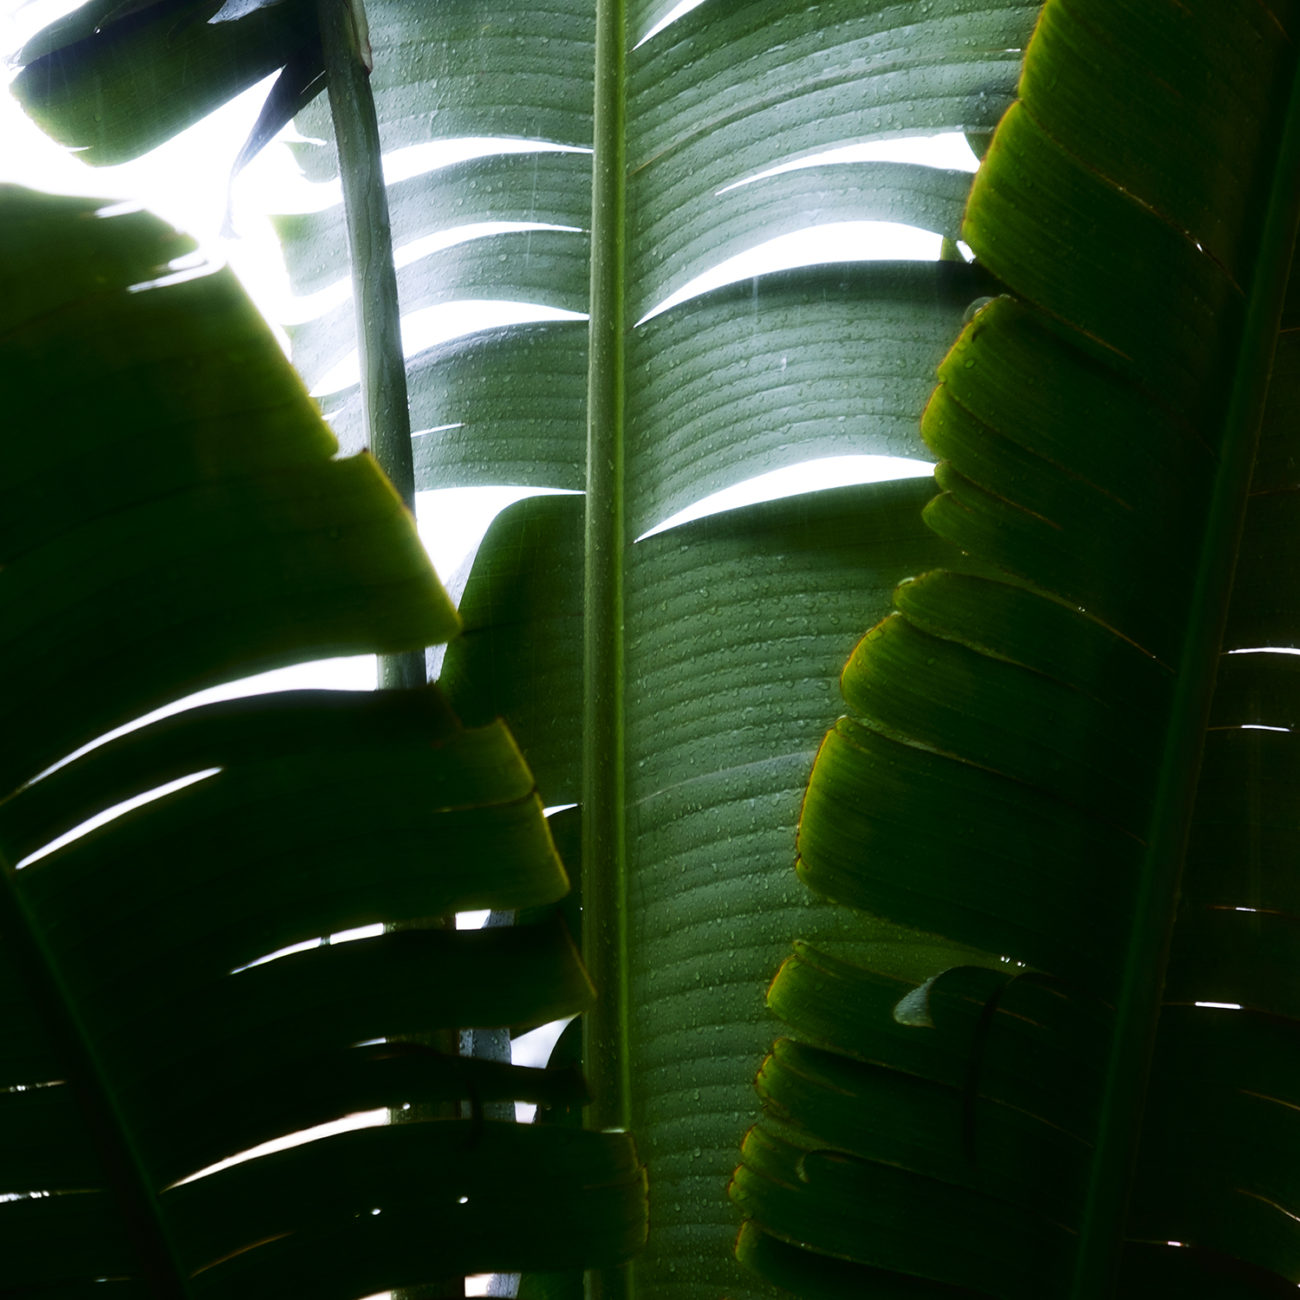 Banana palm leave in rain, Florida, 2017